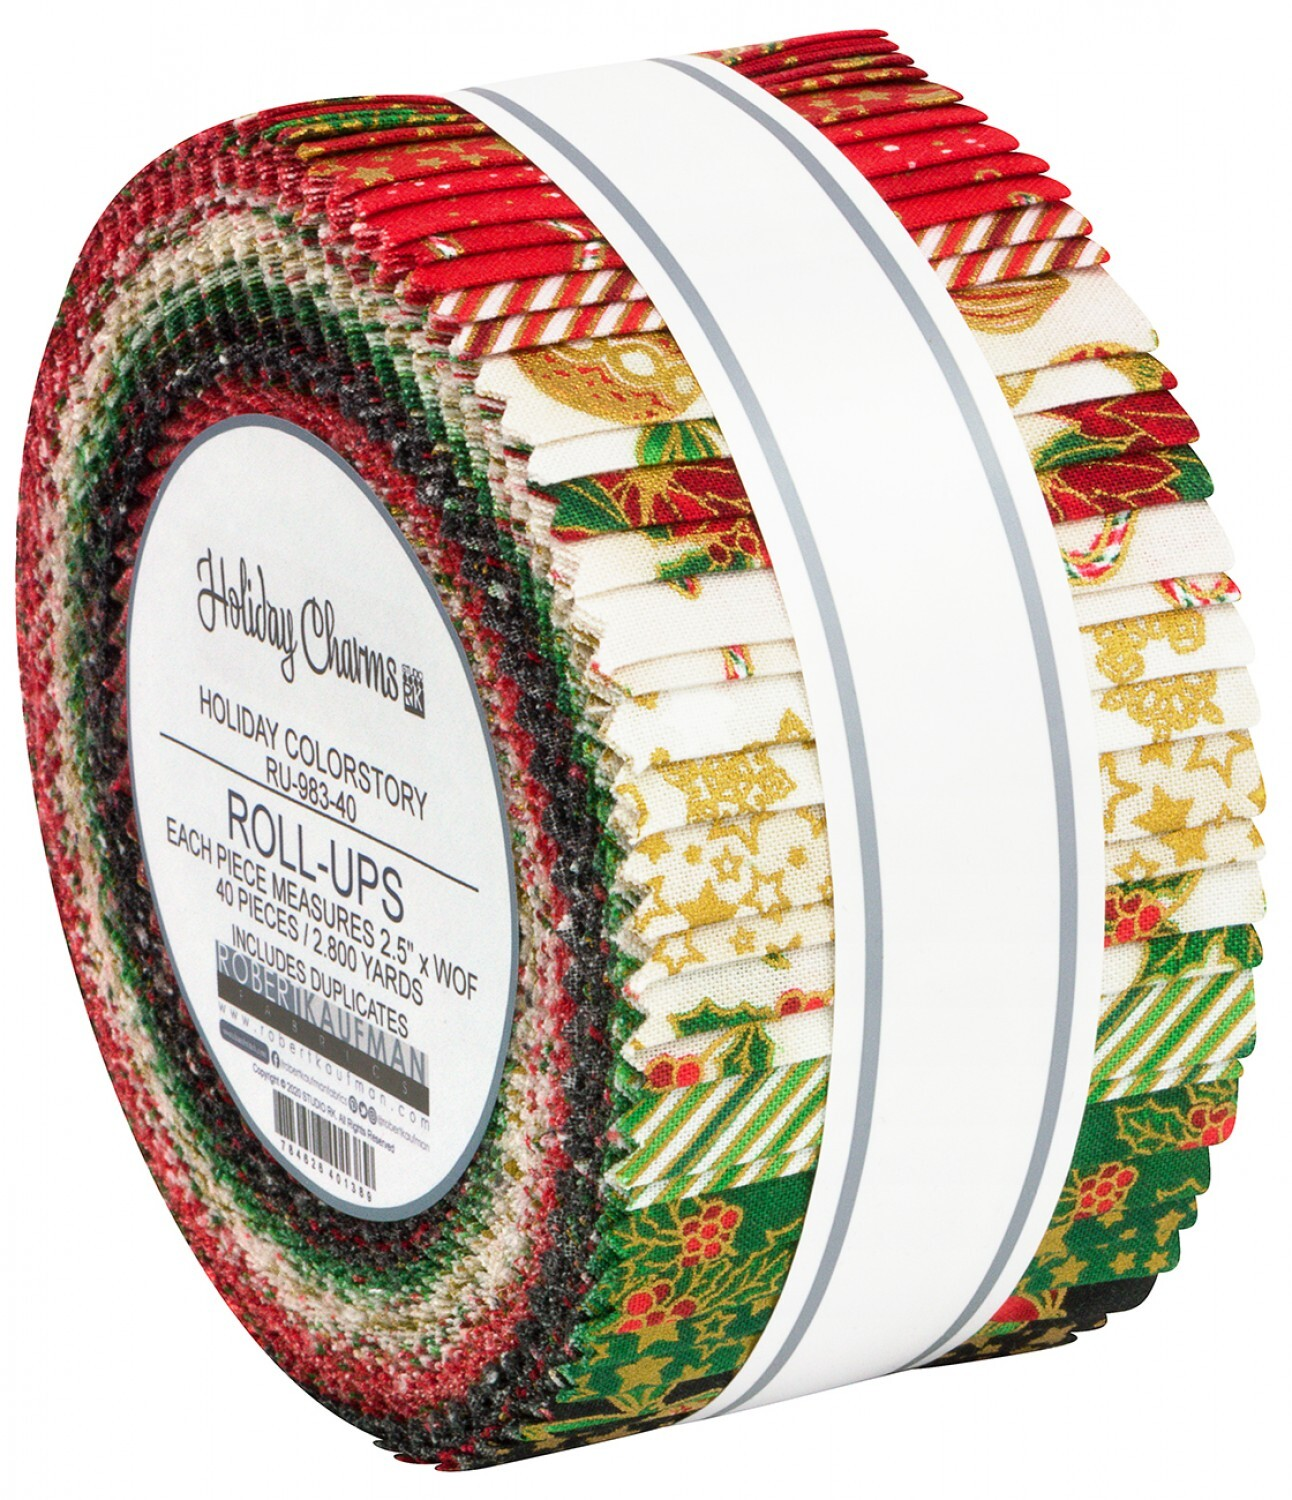 Holiday Charm Jelly Roll - Red & Green 58048